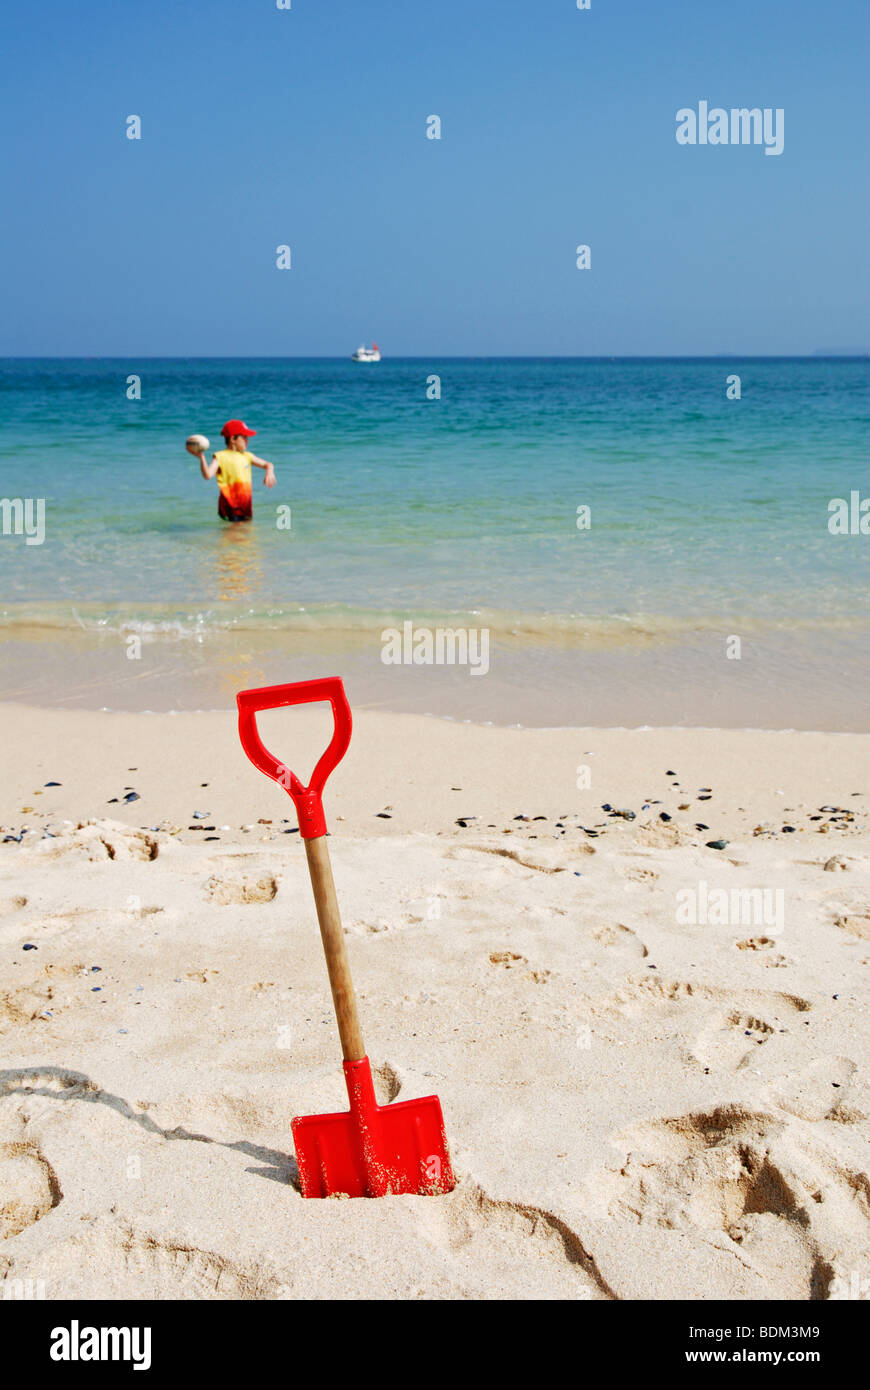 a red spade in the sand on the beach at st.ives in cornwall, uk - Stock Image